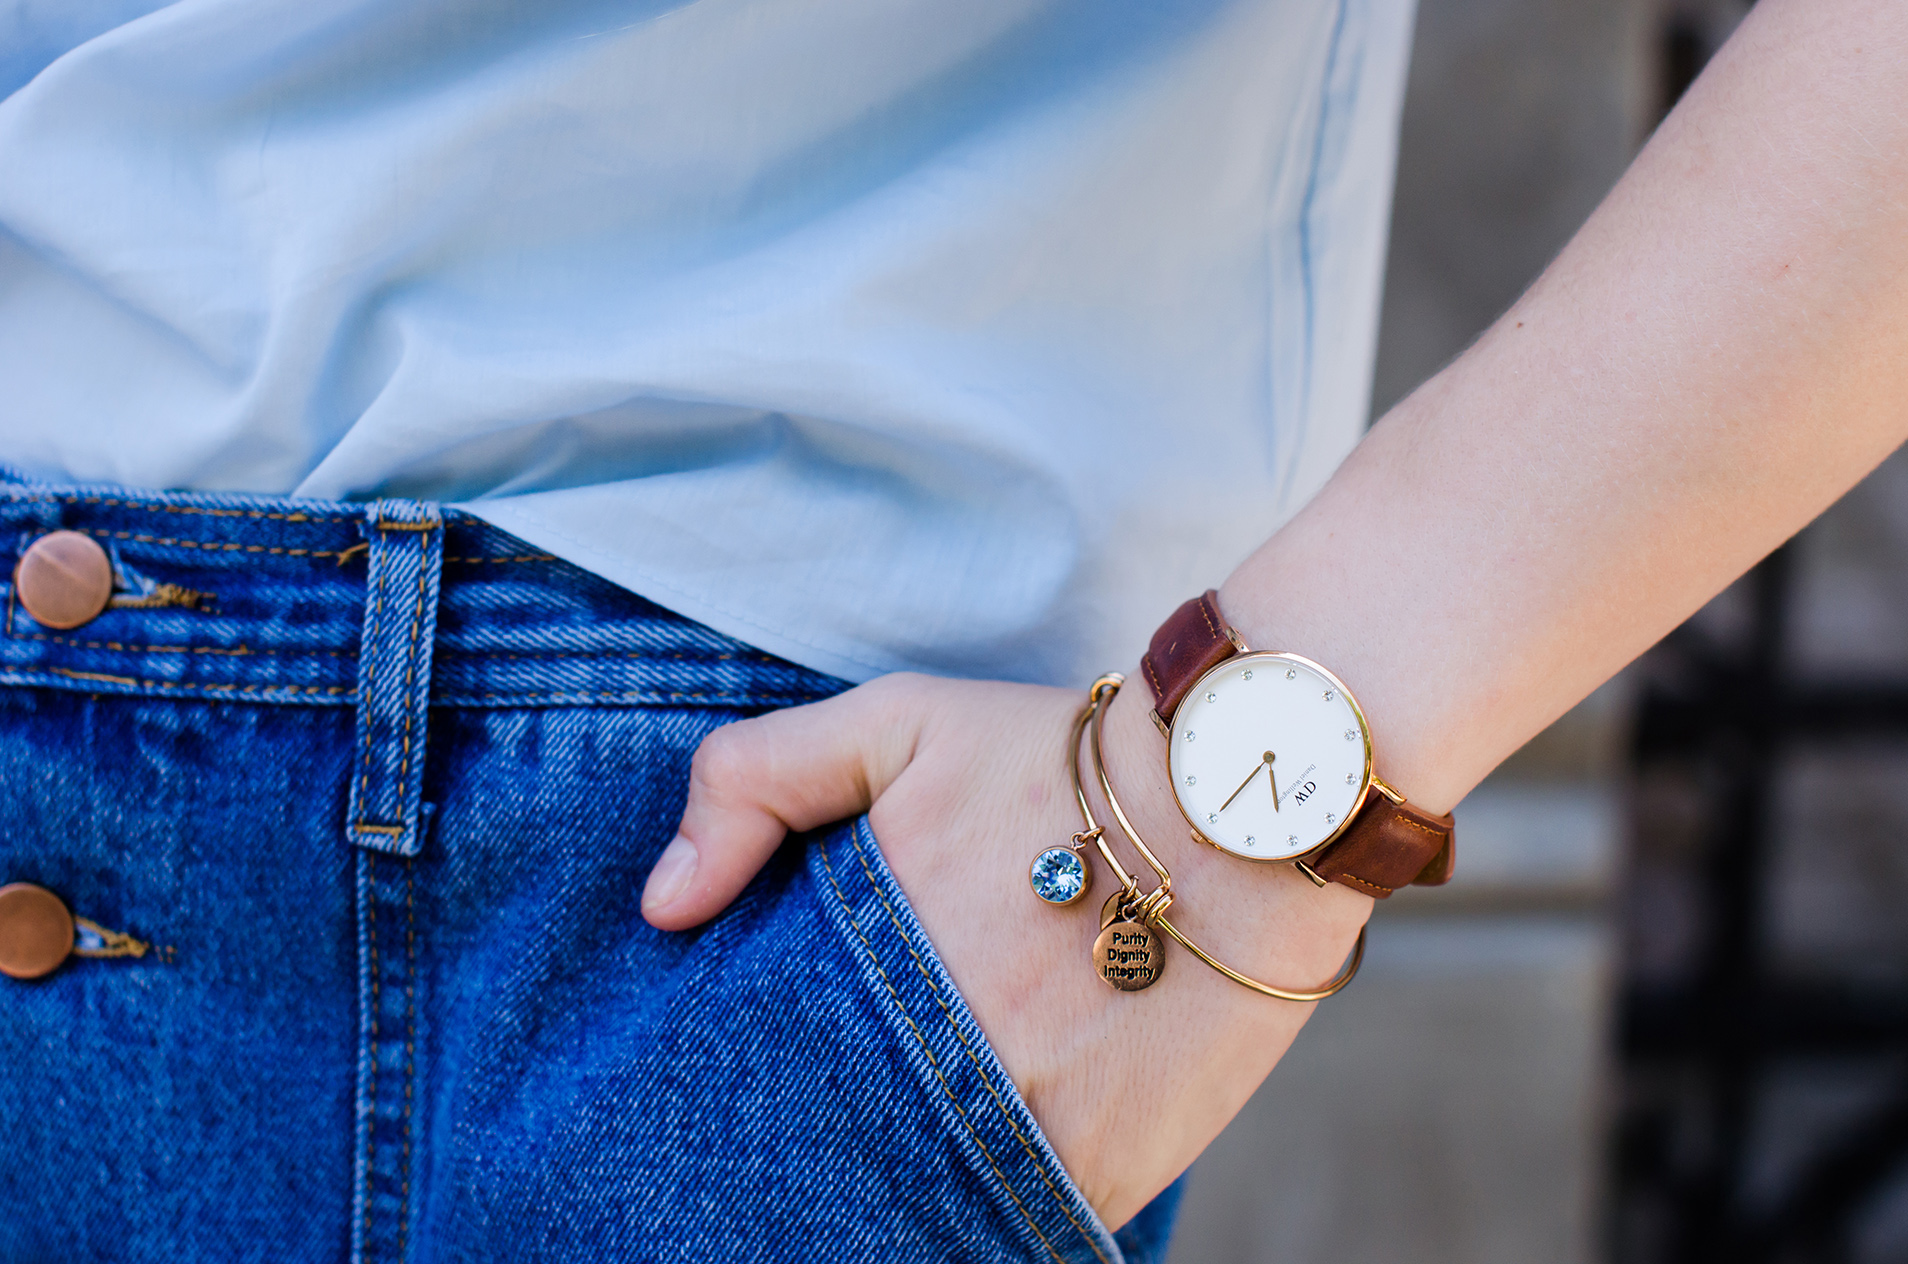 denim-skirt-blue-ruffle-blouse-suede-sandals-daniel-wellington-watch (8)